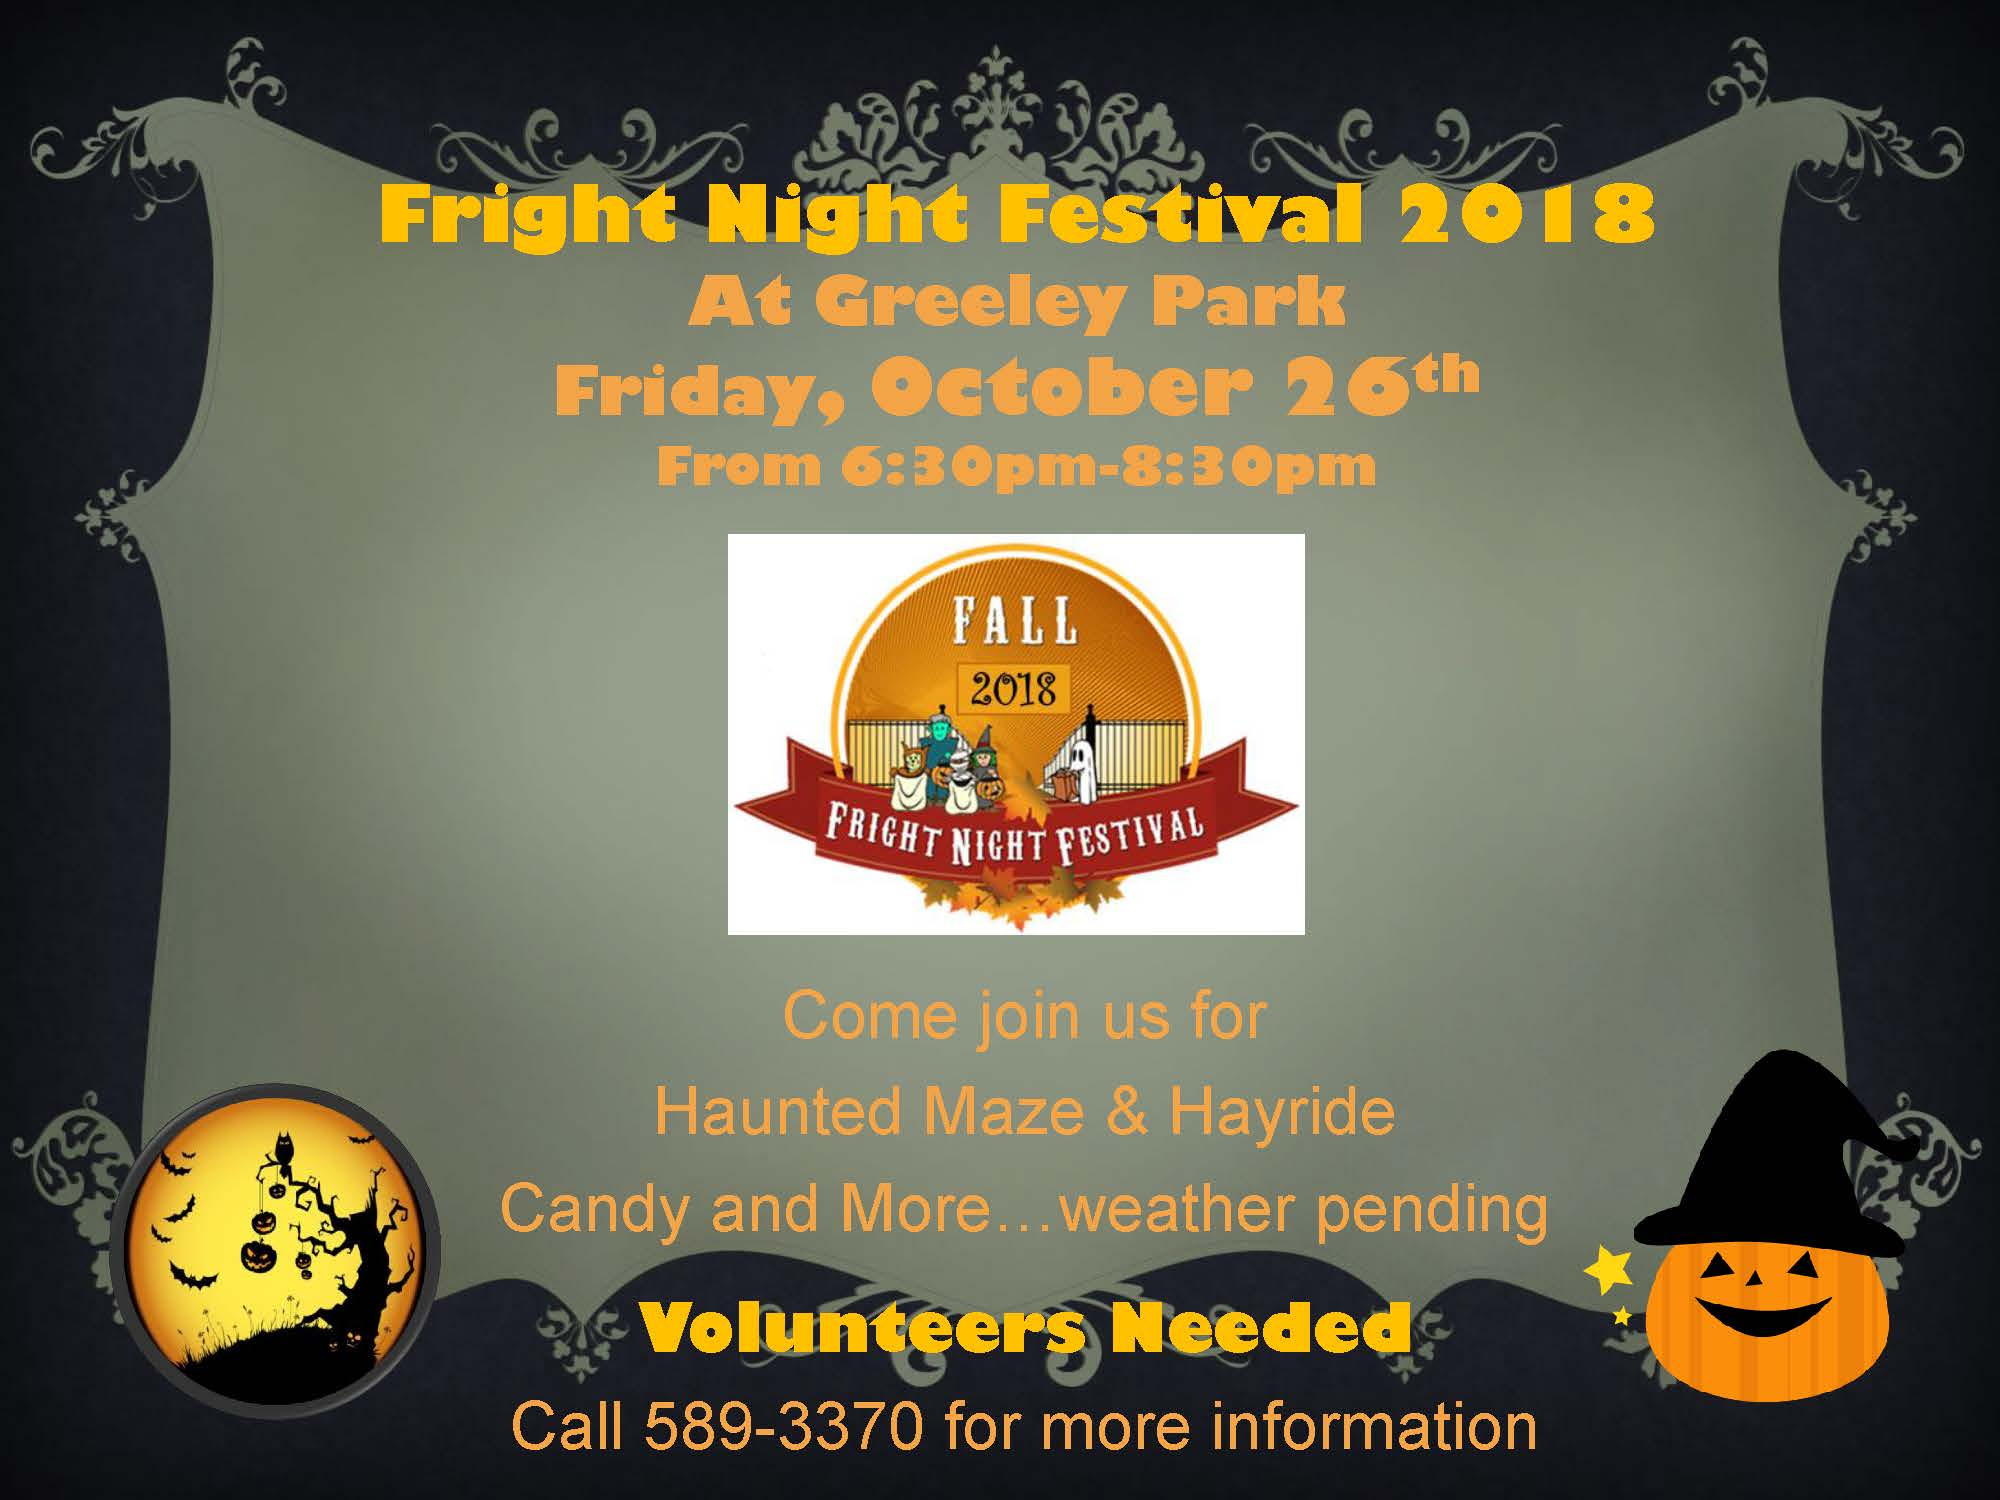 Flyer with grey and black backgrounds, pumpkins and event information in orange font